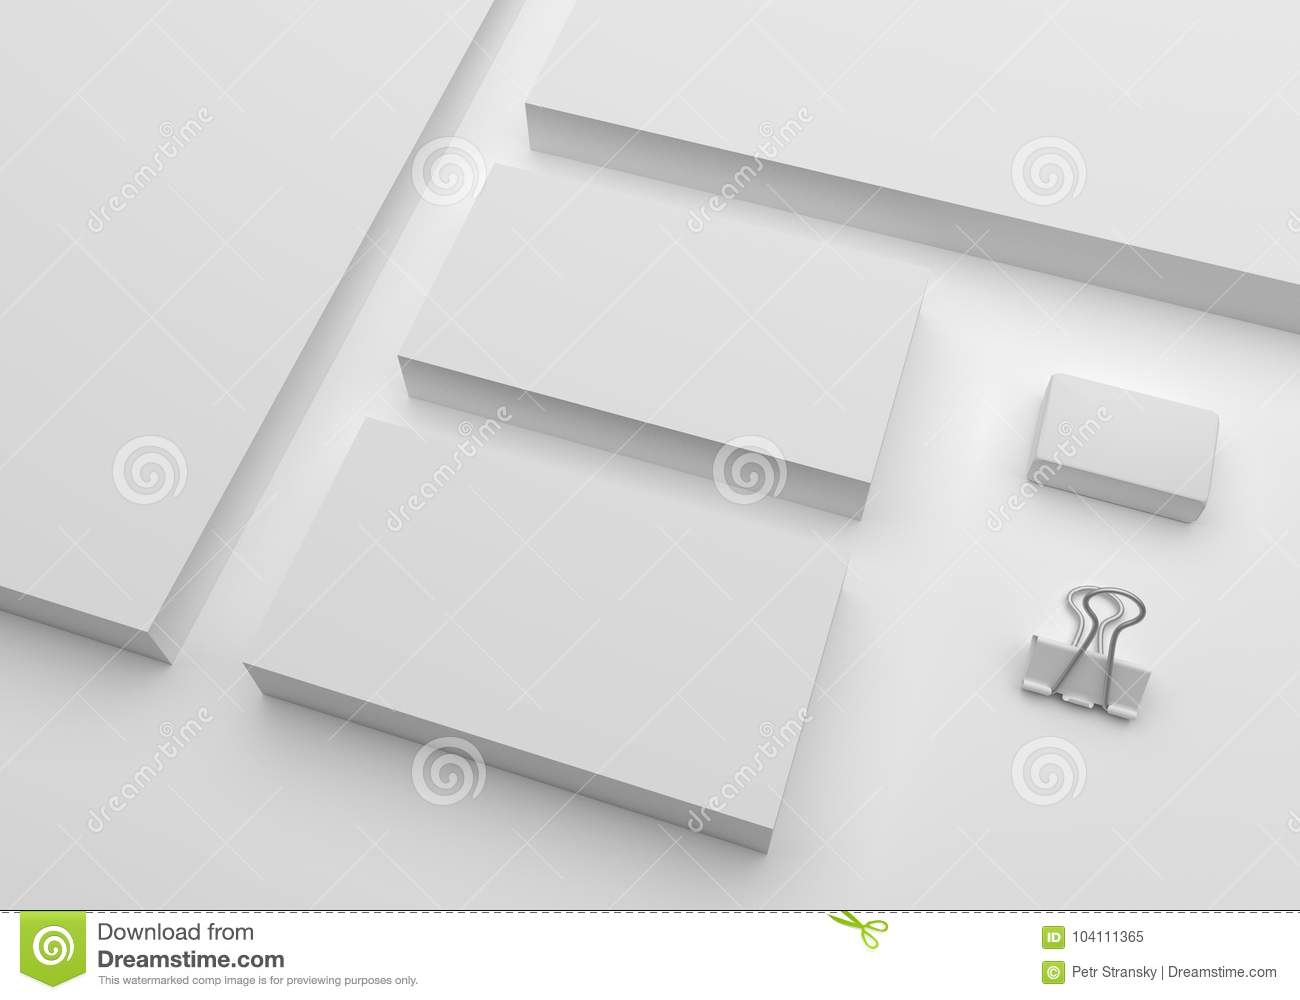 Blank 3d illustration mockup business cards stock illustration download blank 3d illustration mockup business cards stock illustration illustration of gray stationery reheart Image collections